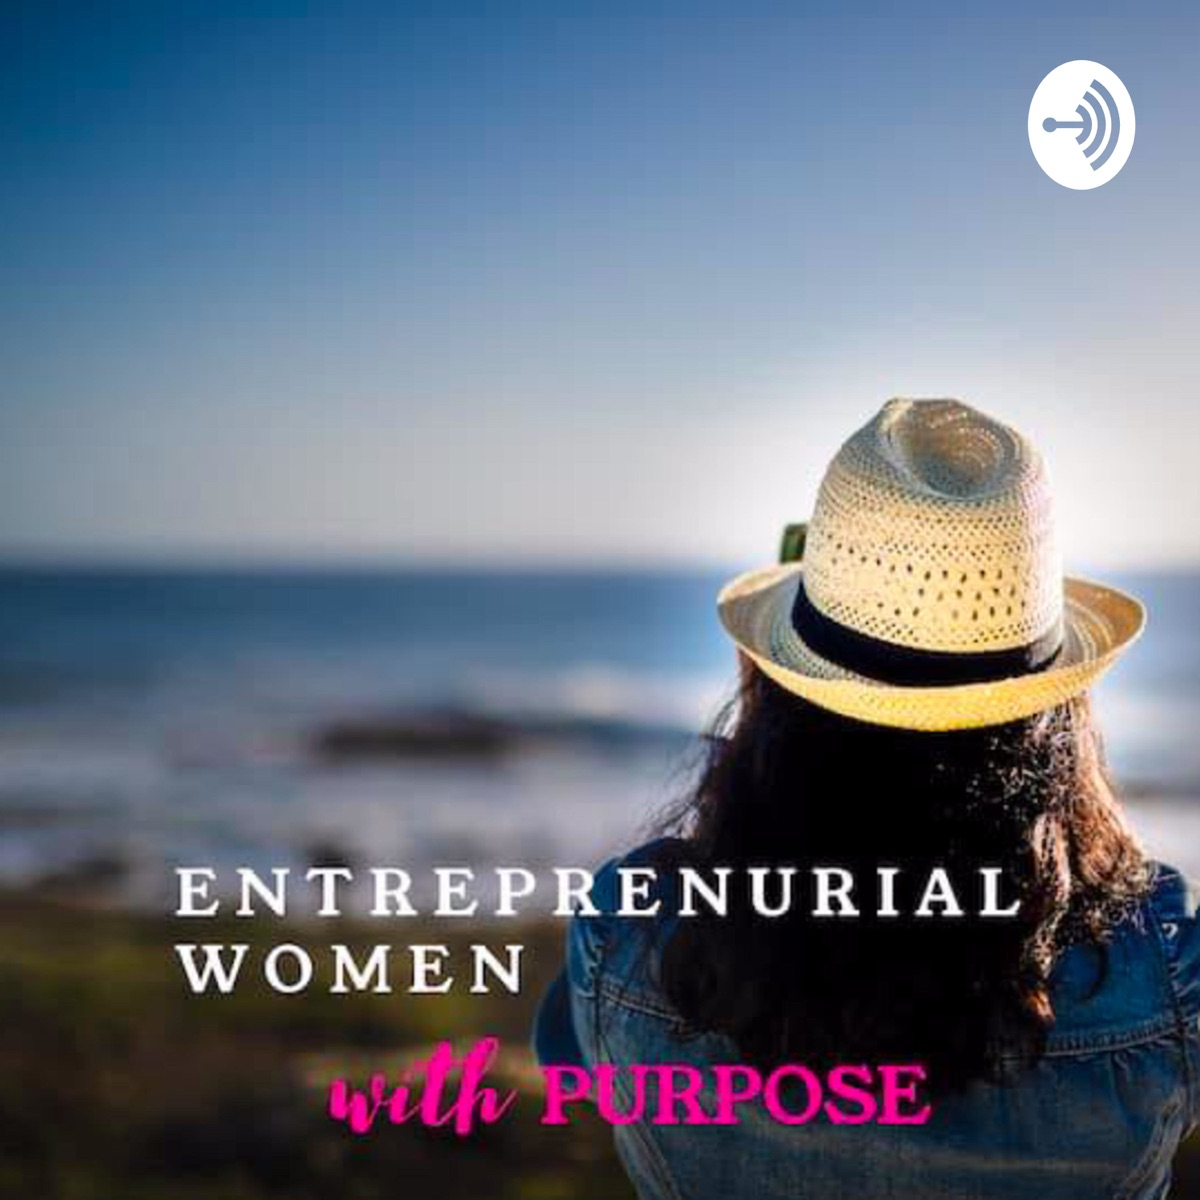 Entrepreneurial Women with Purpose